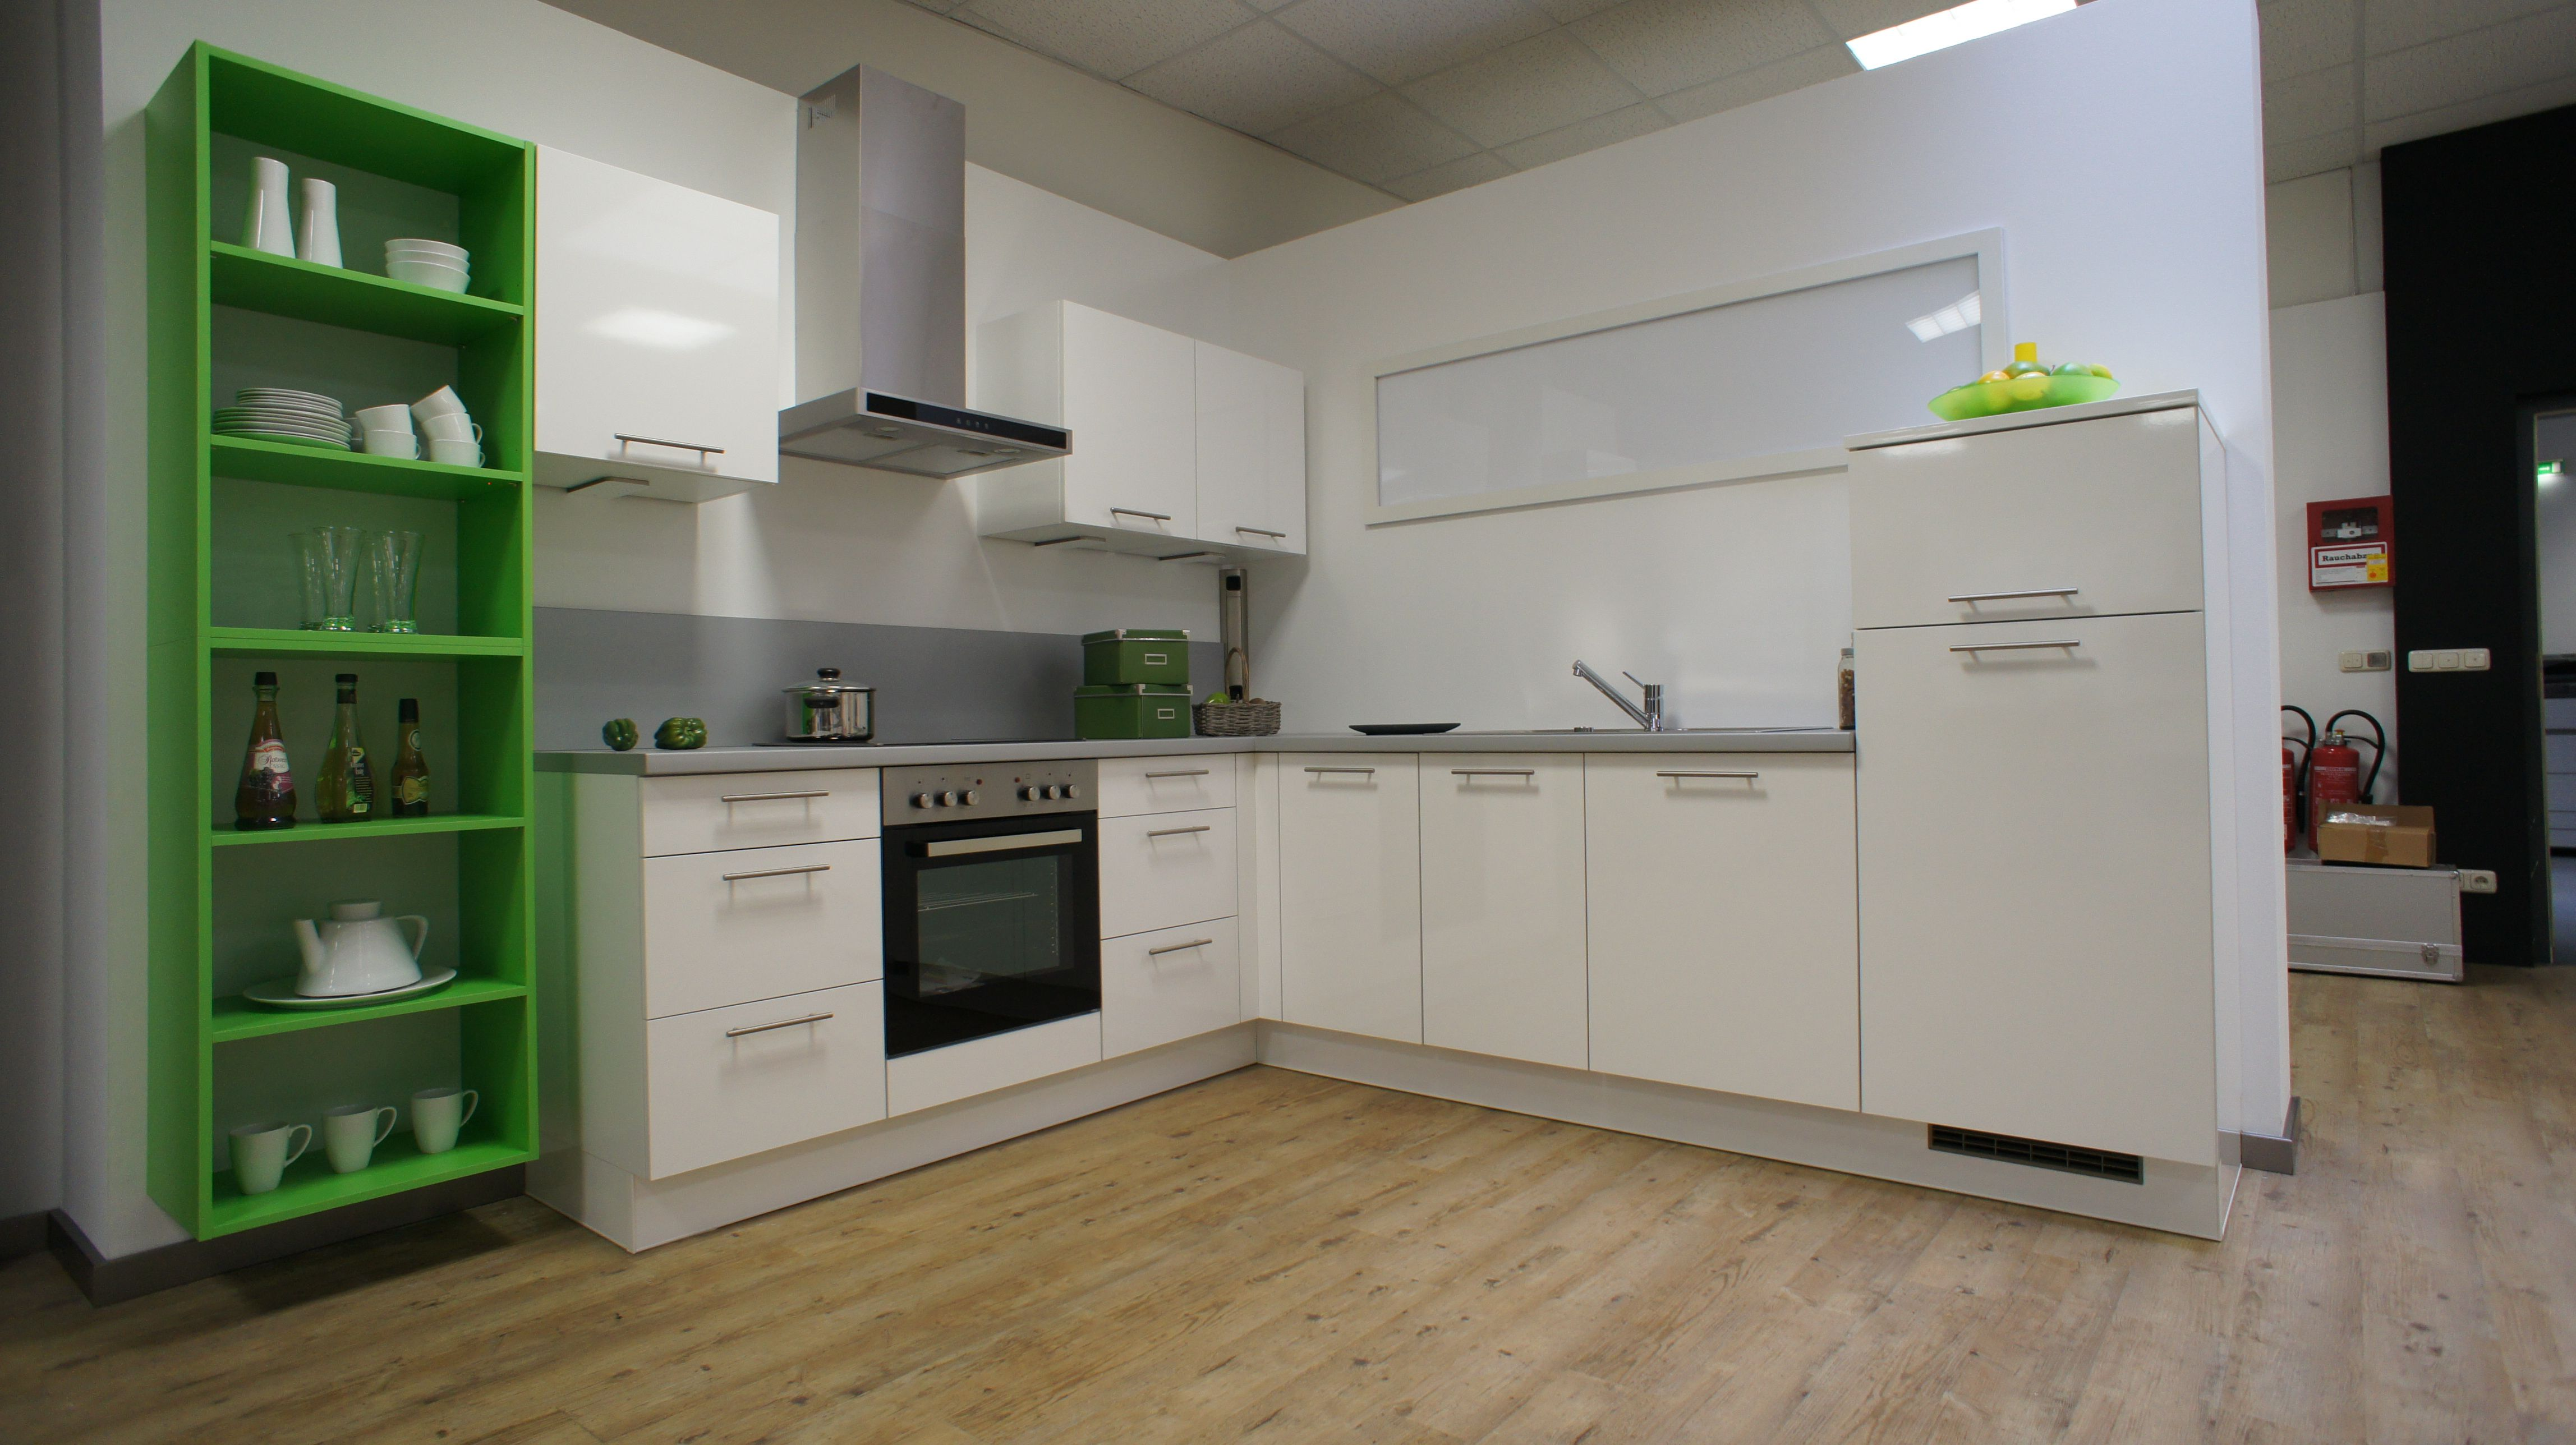 white and green kitchen by Burger Bauformat German kitchens, bright ...